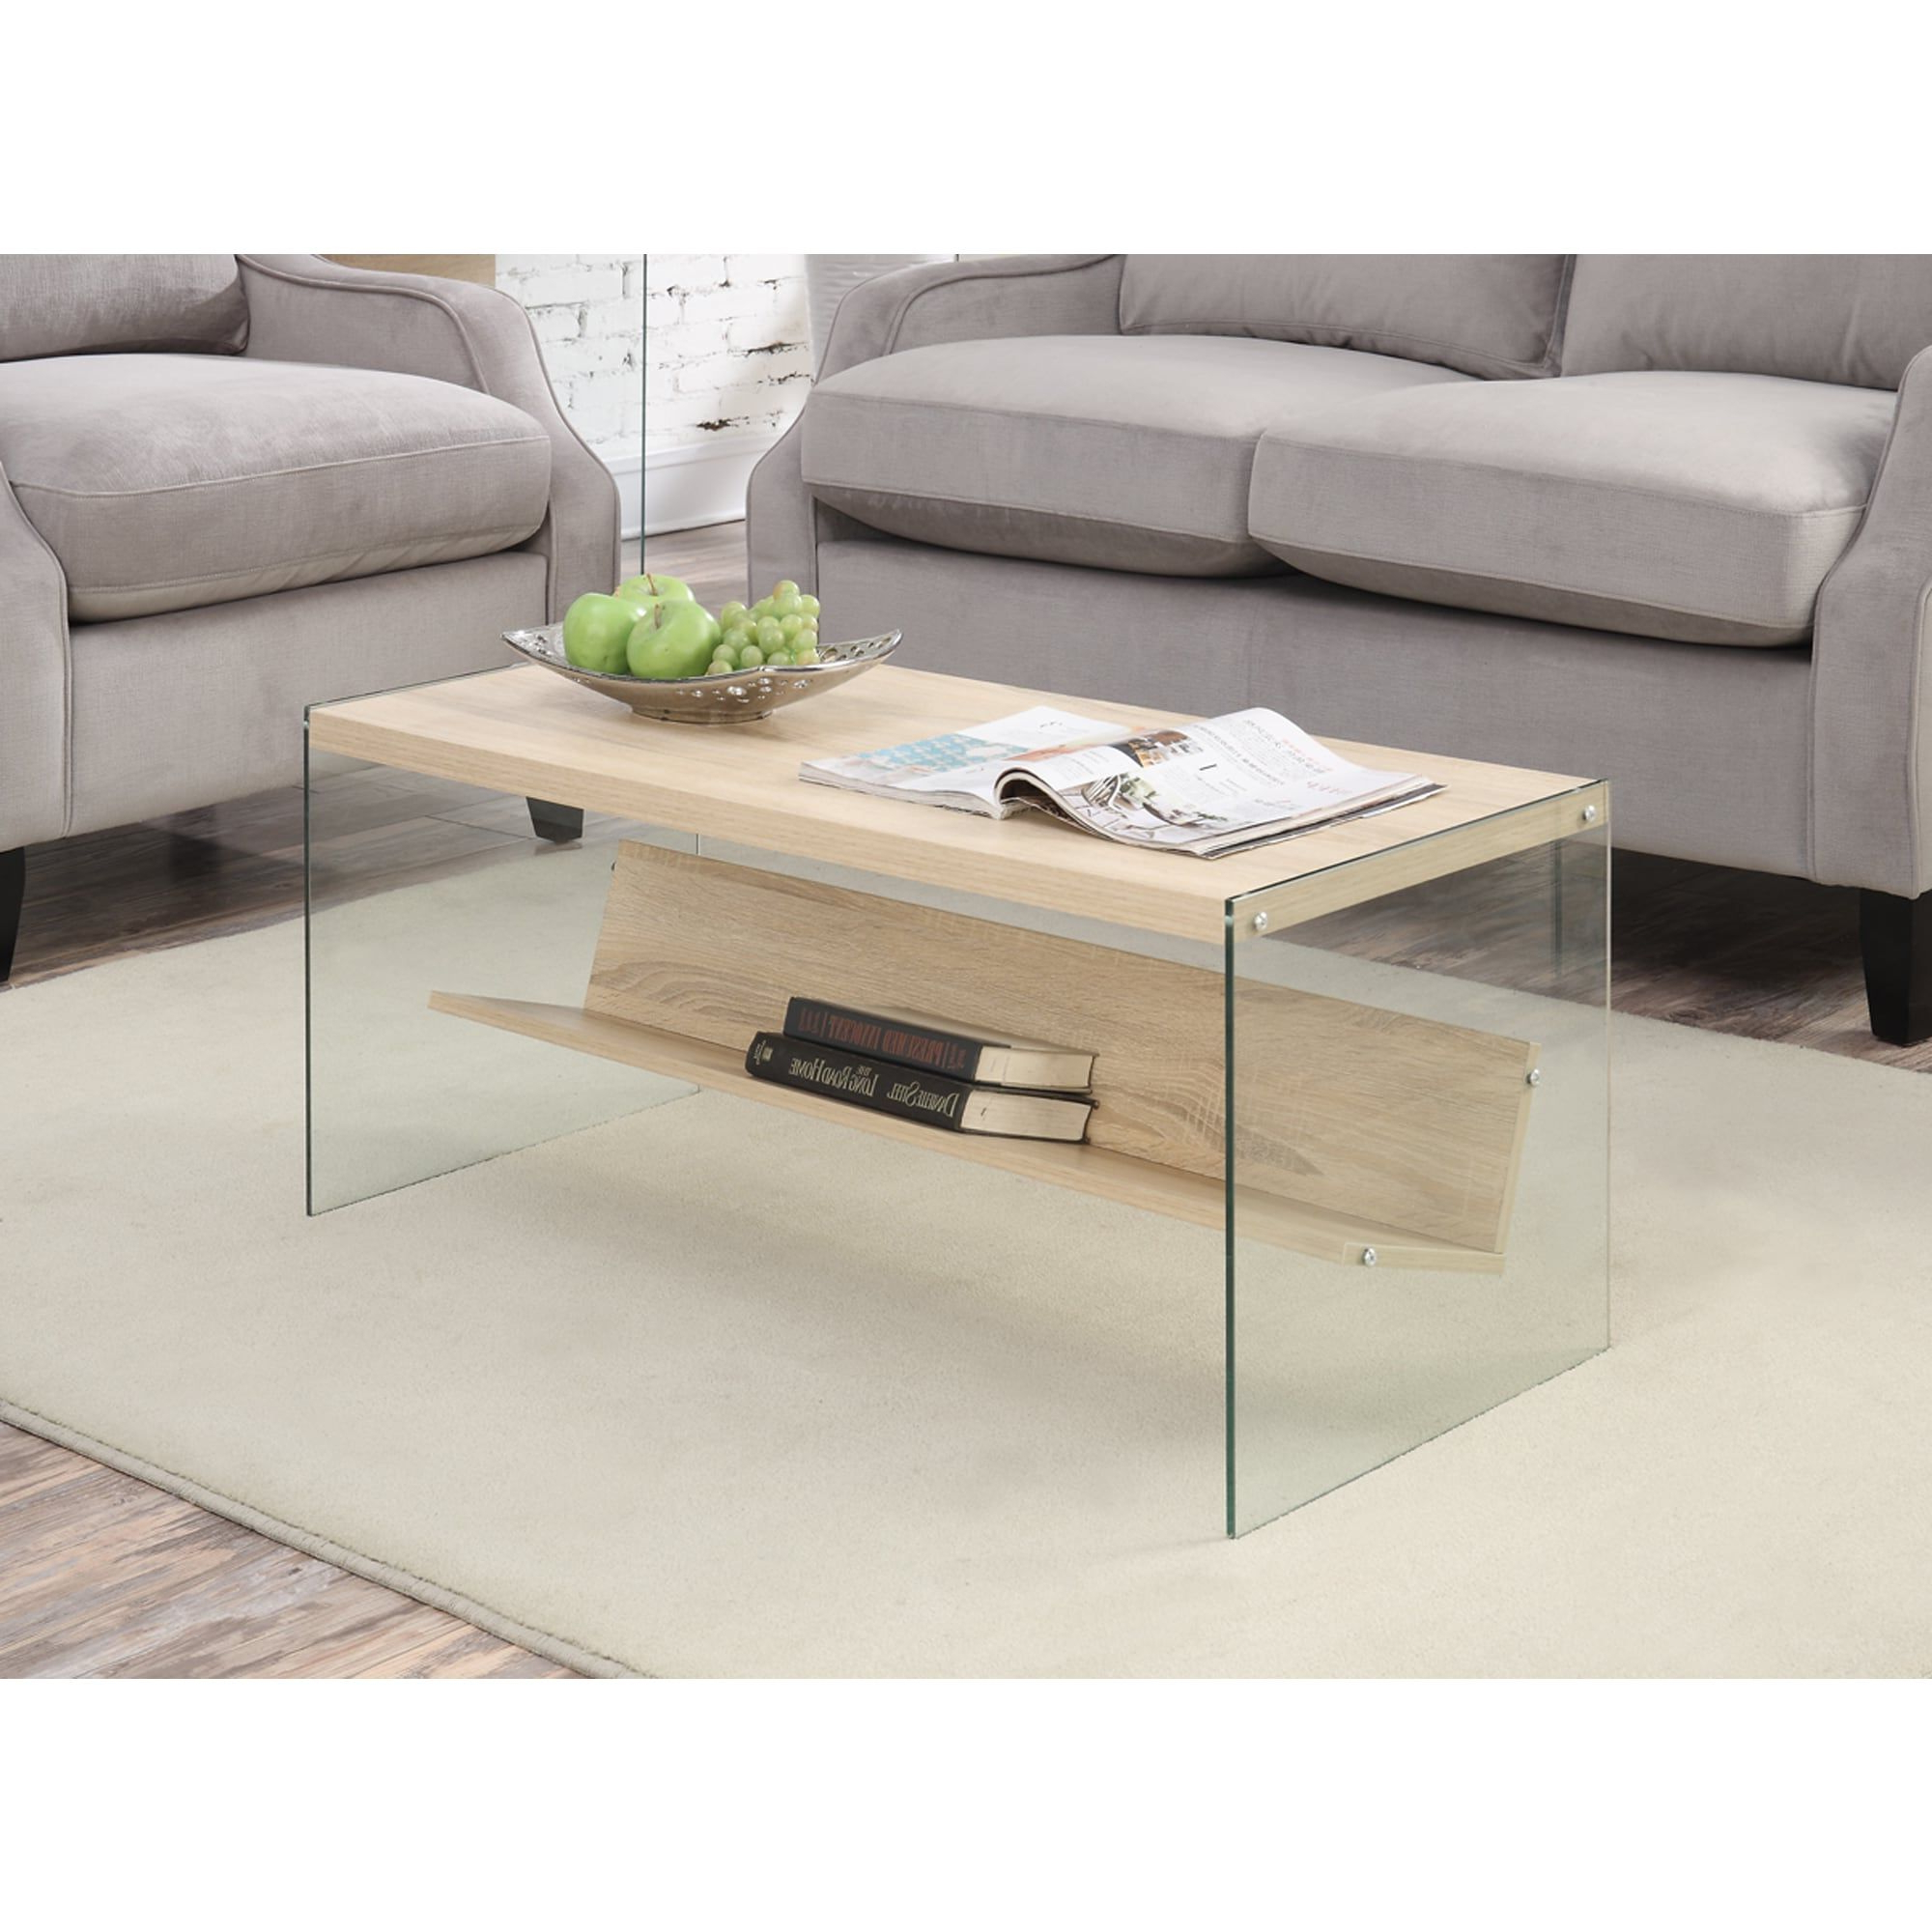 2020 Porch & Den Urqhuart Wood Glass Coffee Tables Regarding Porch & Den Urqhuart Wood/ Glass Coffee Table (Gallery 1 of 20)